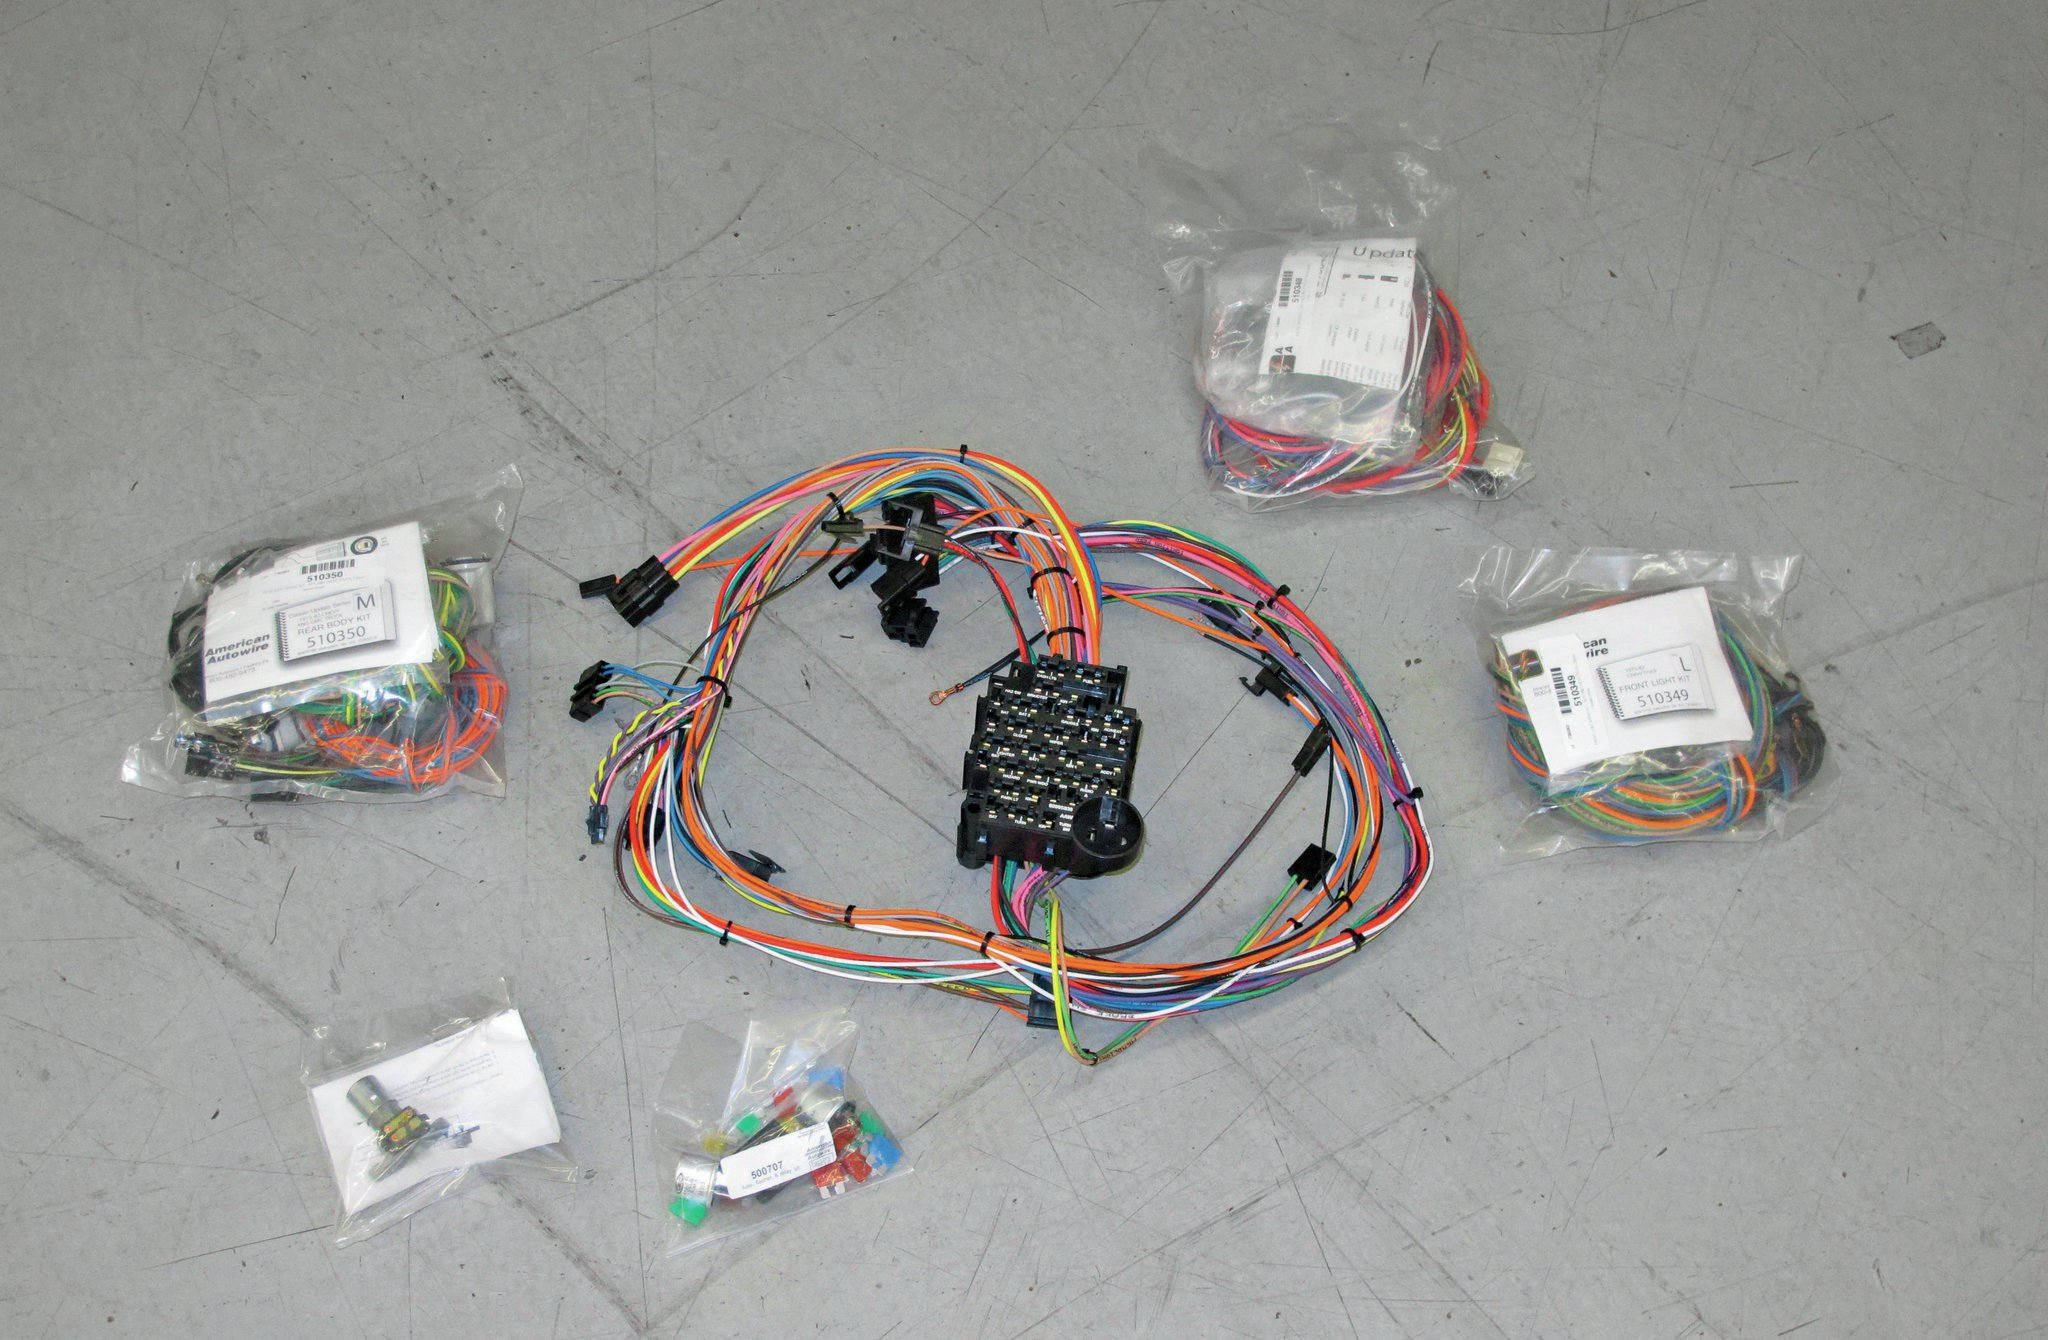 American Autowire Highway 22 Wiring Harness Kits 500695 Auto Diagram 25 Images